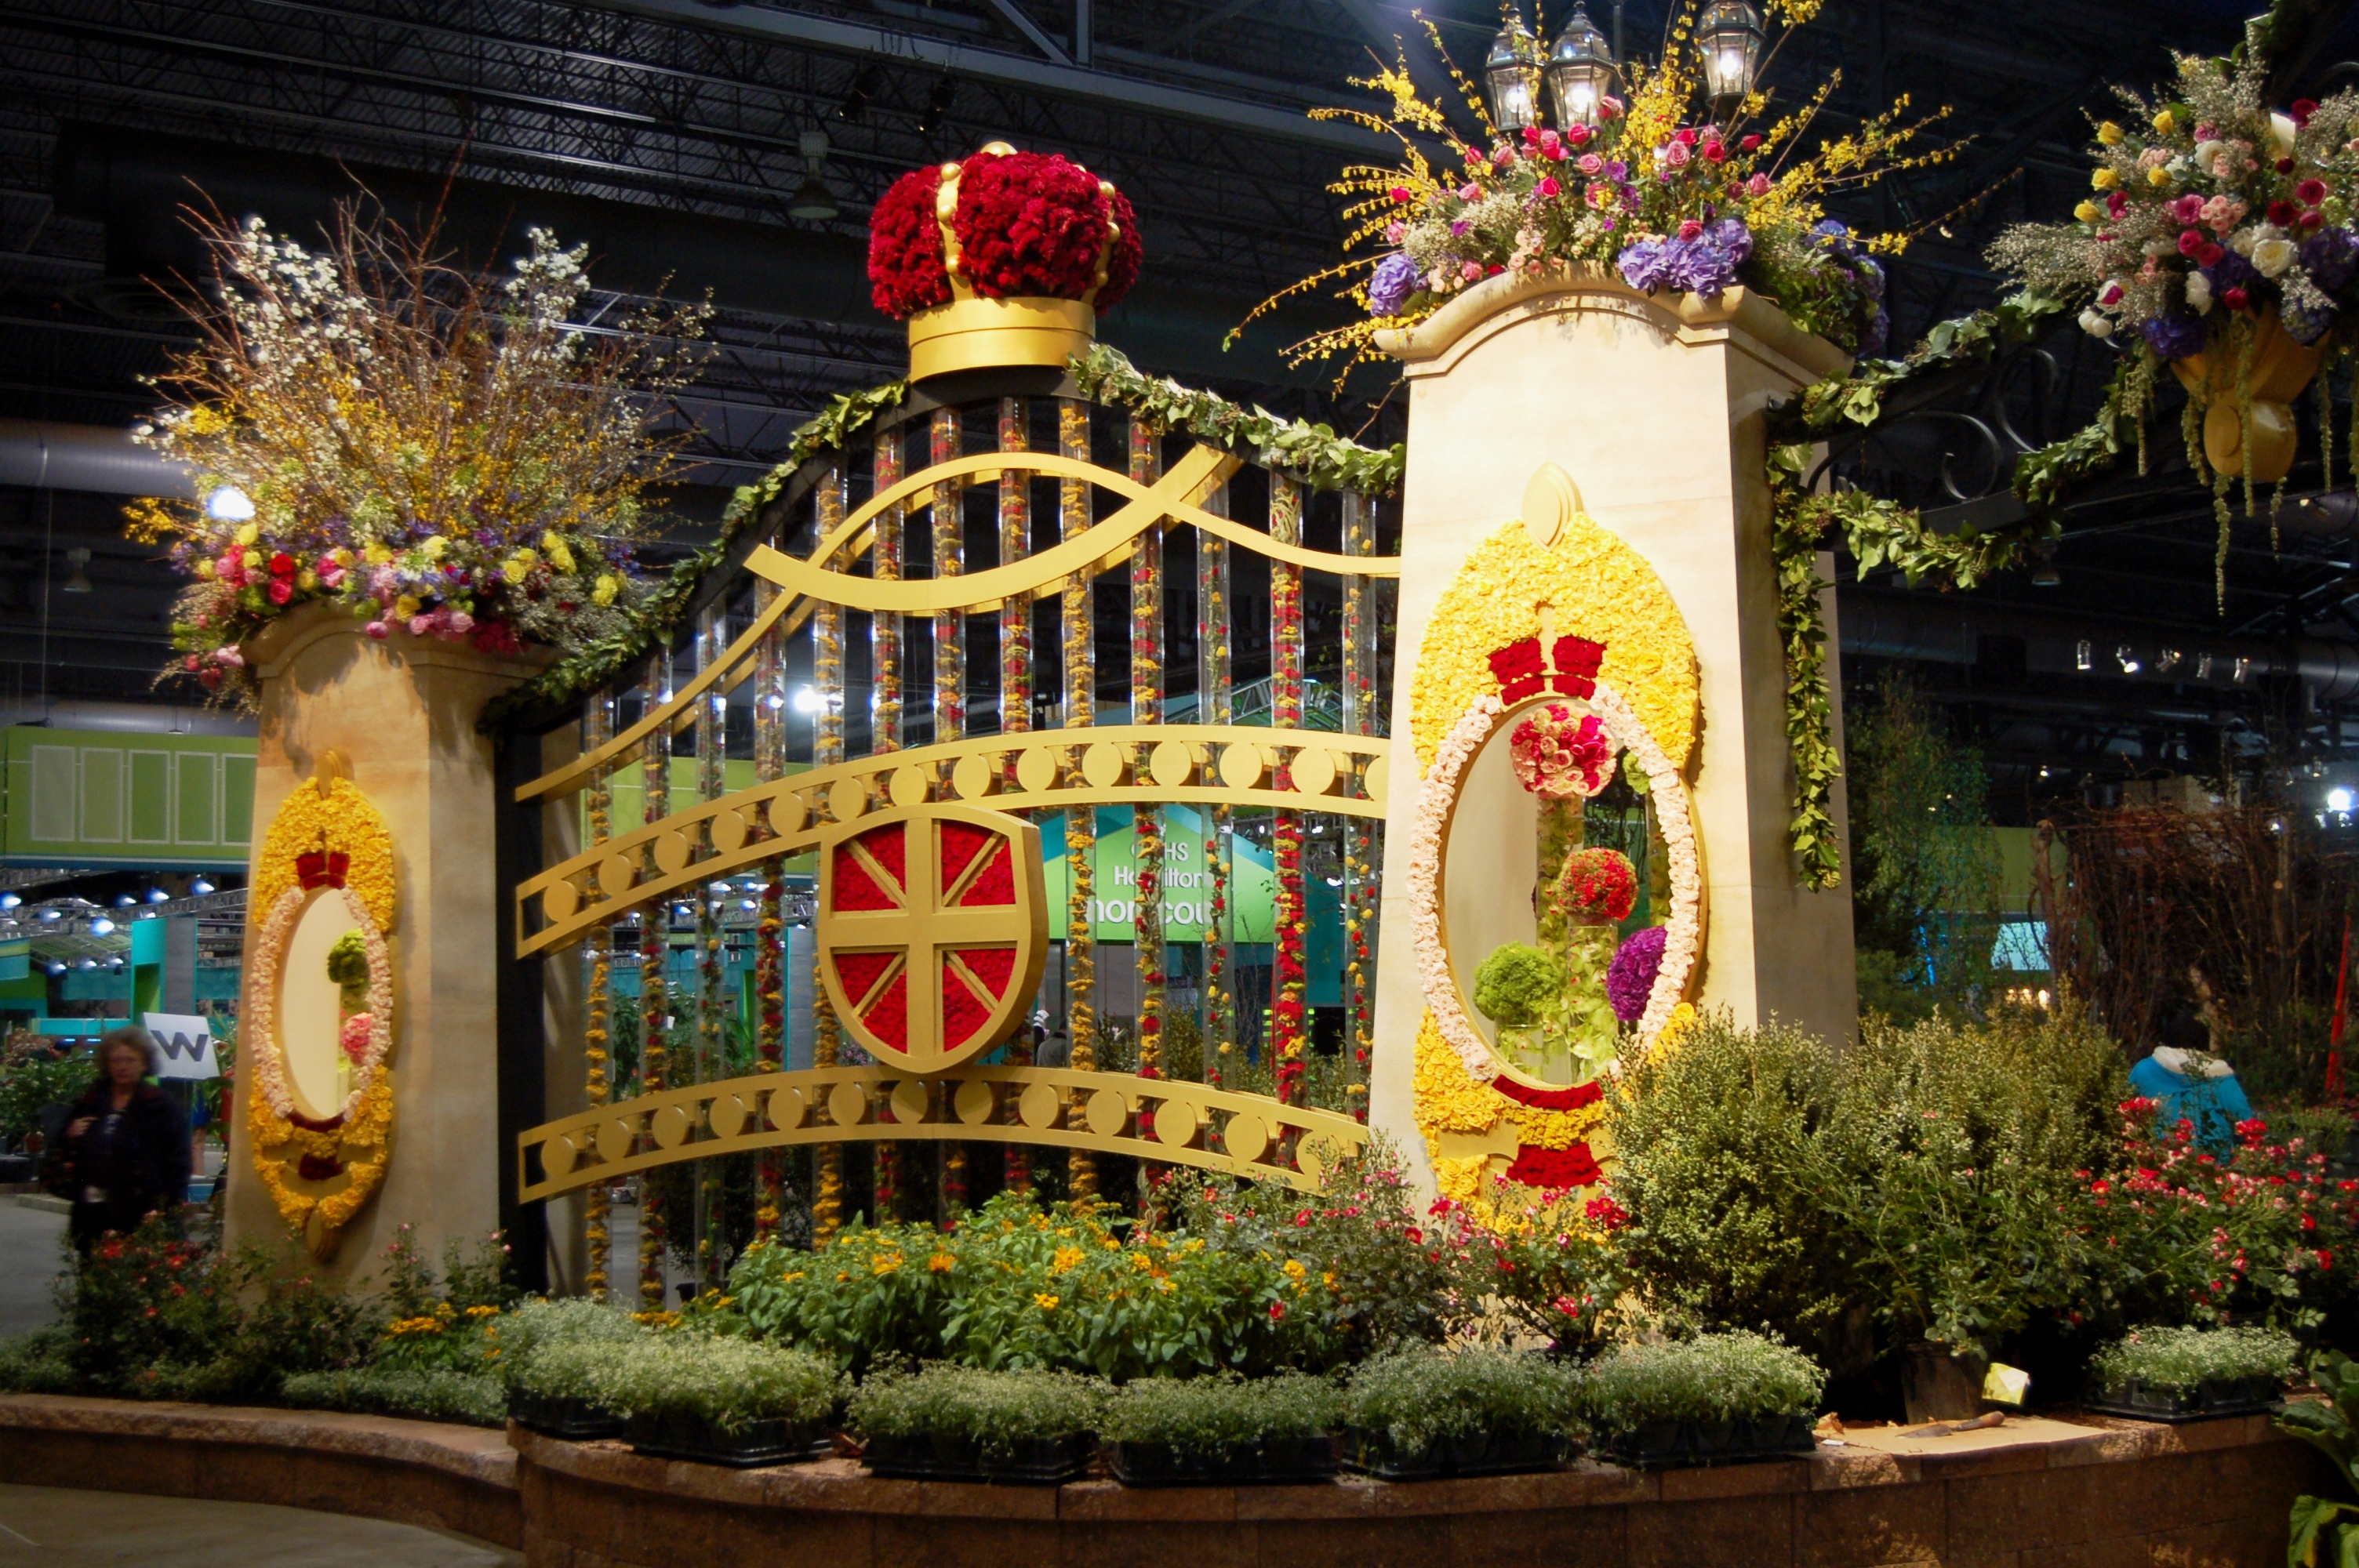 Philadelphia flower show hortitopia - Royal flower show ...